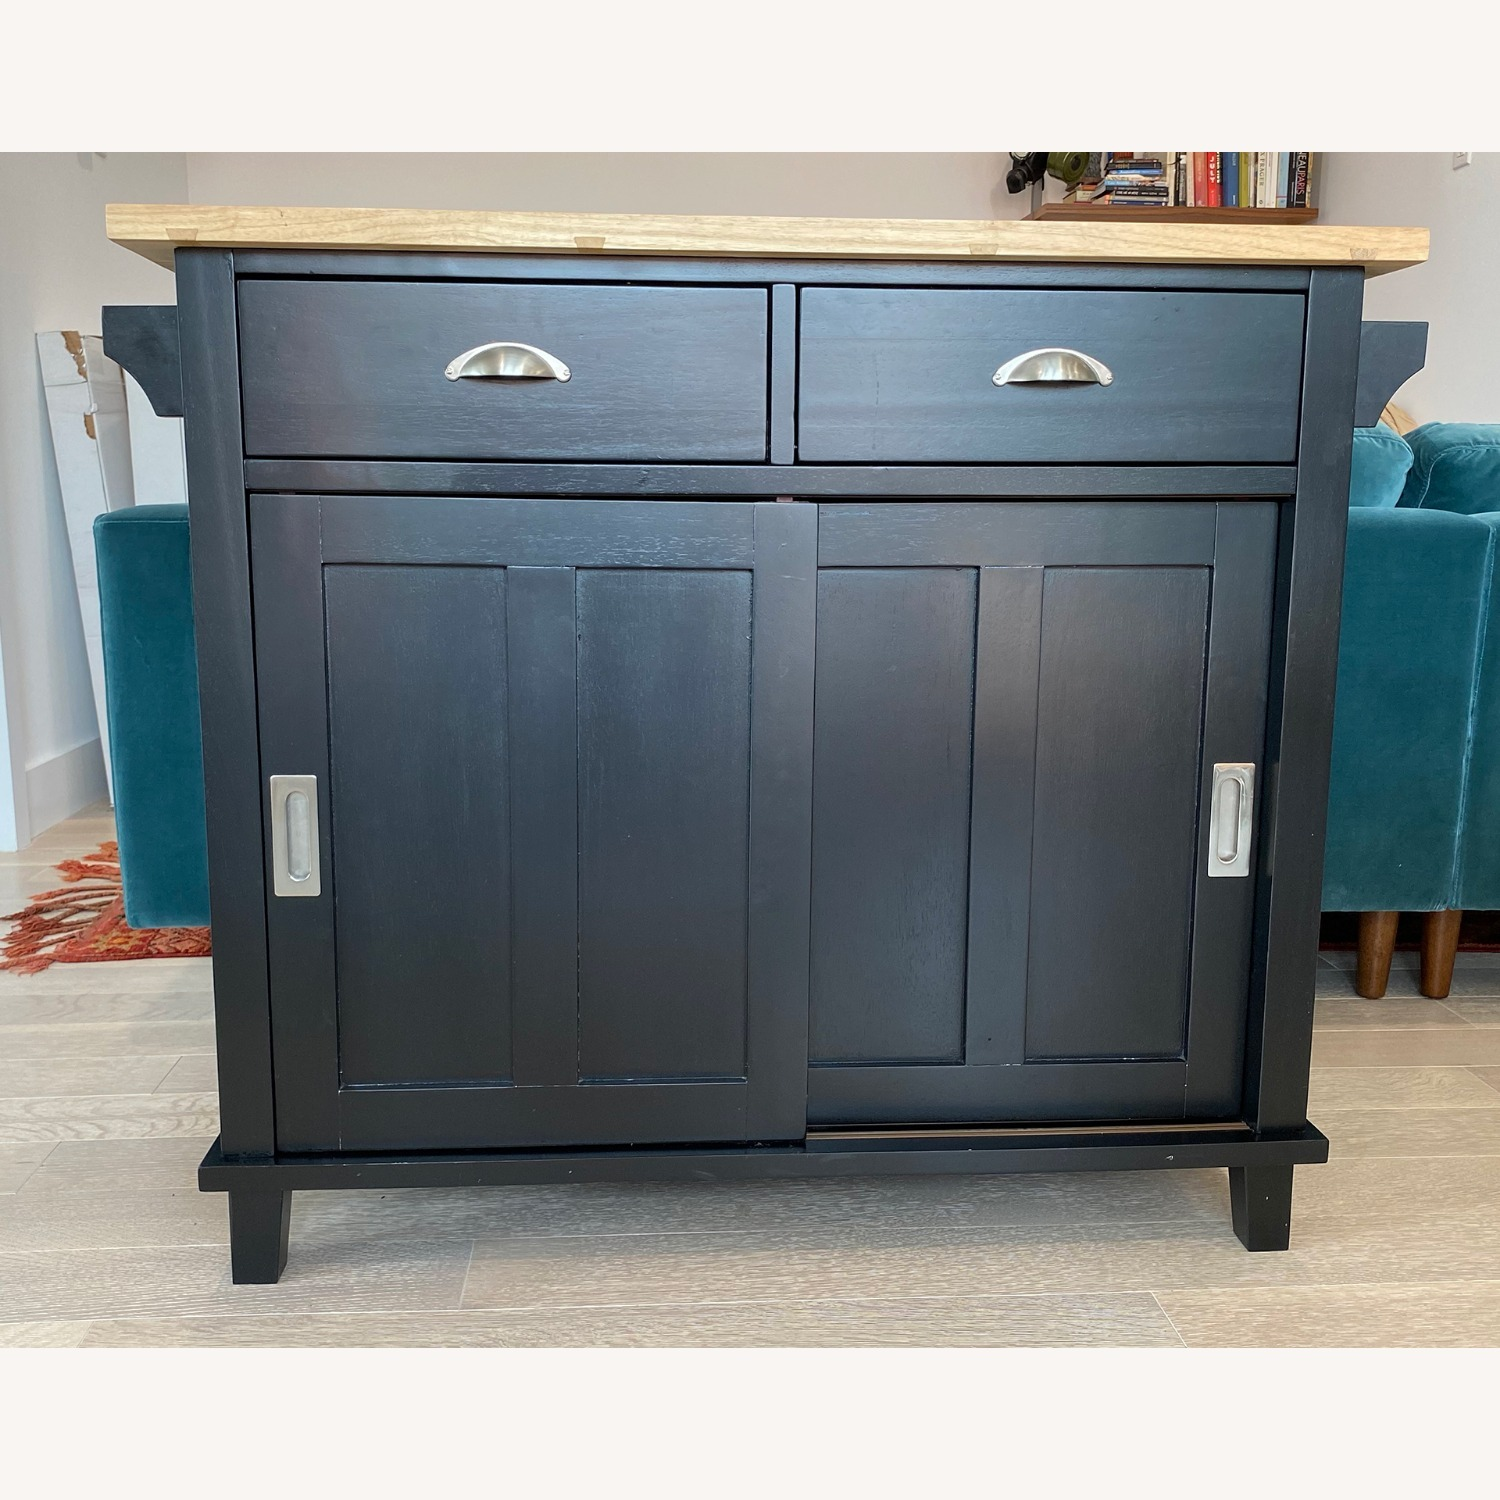 Crate & Barrel Belmont Black Kitchen Island - image-1